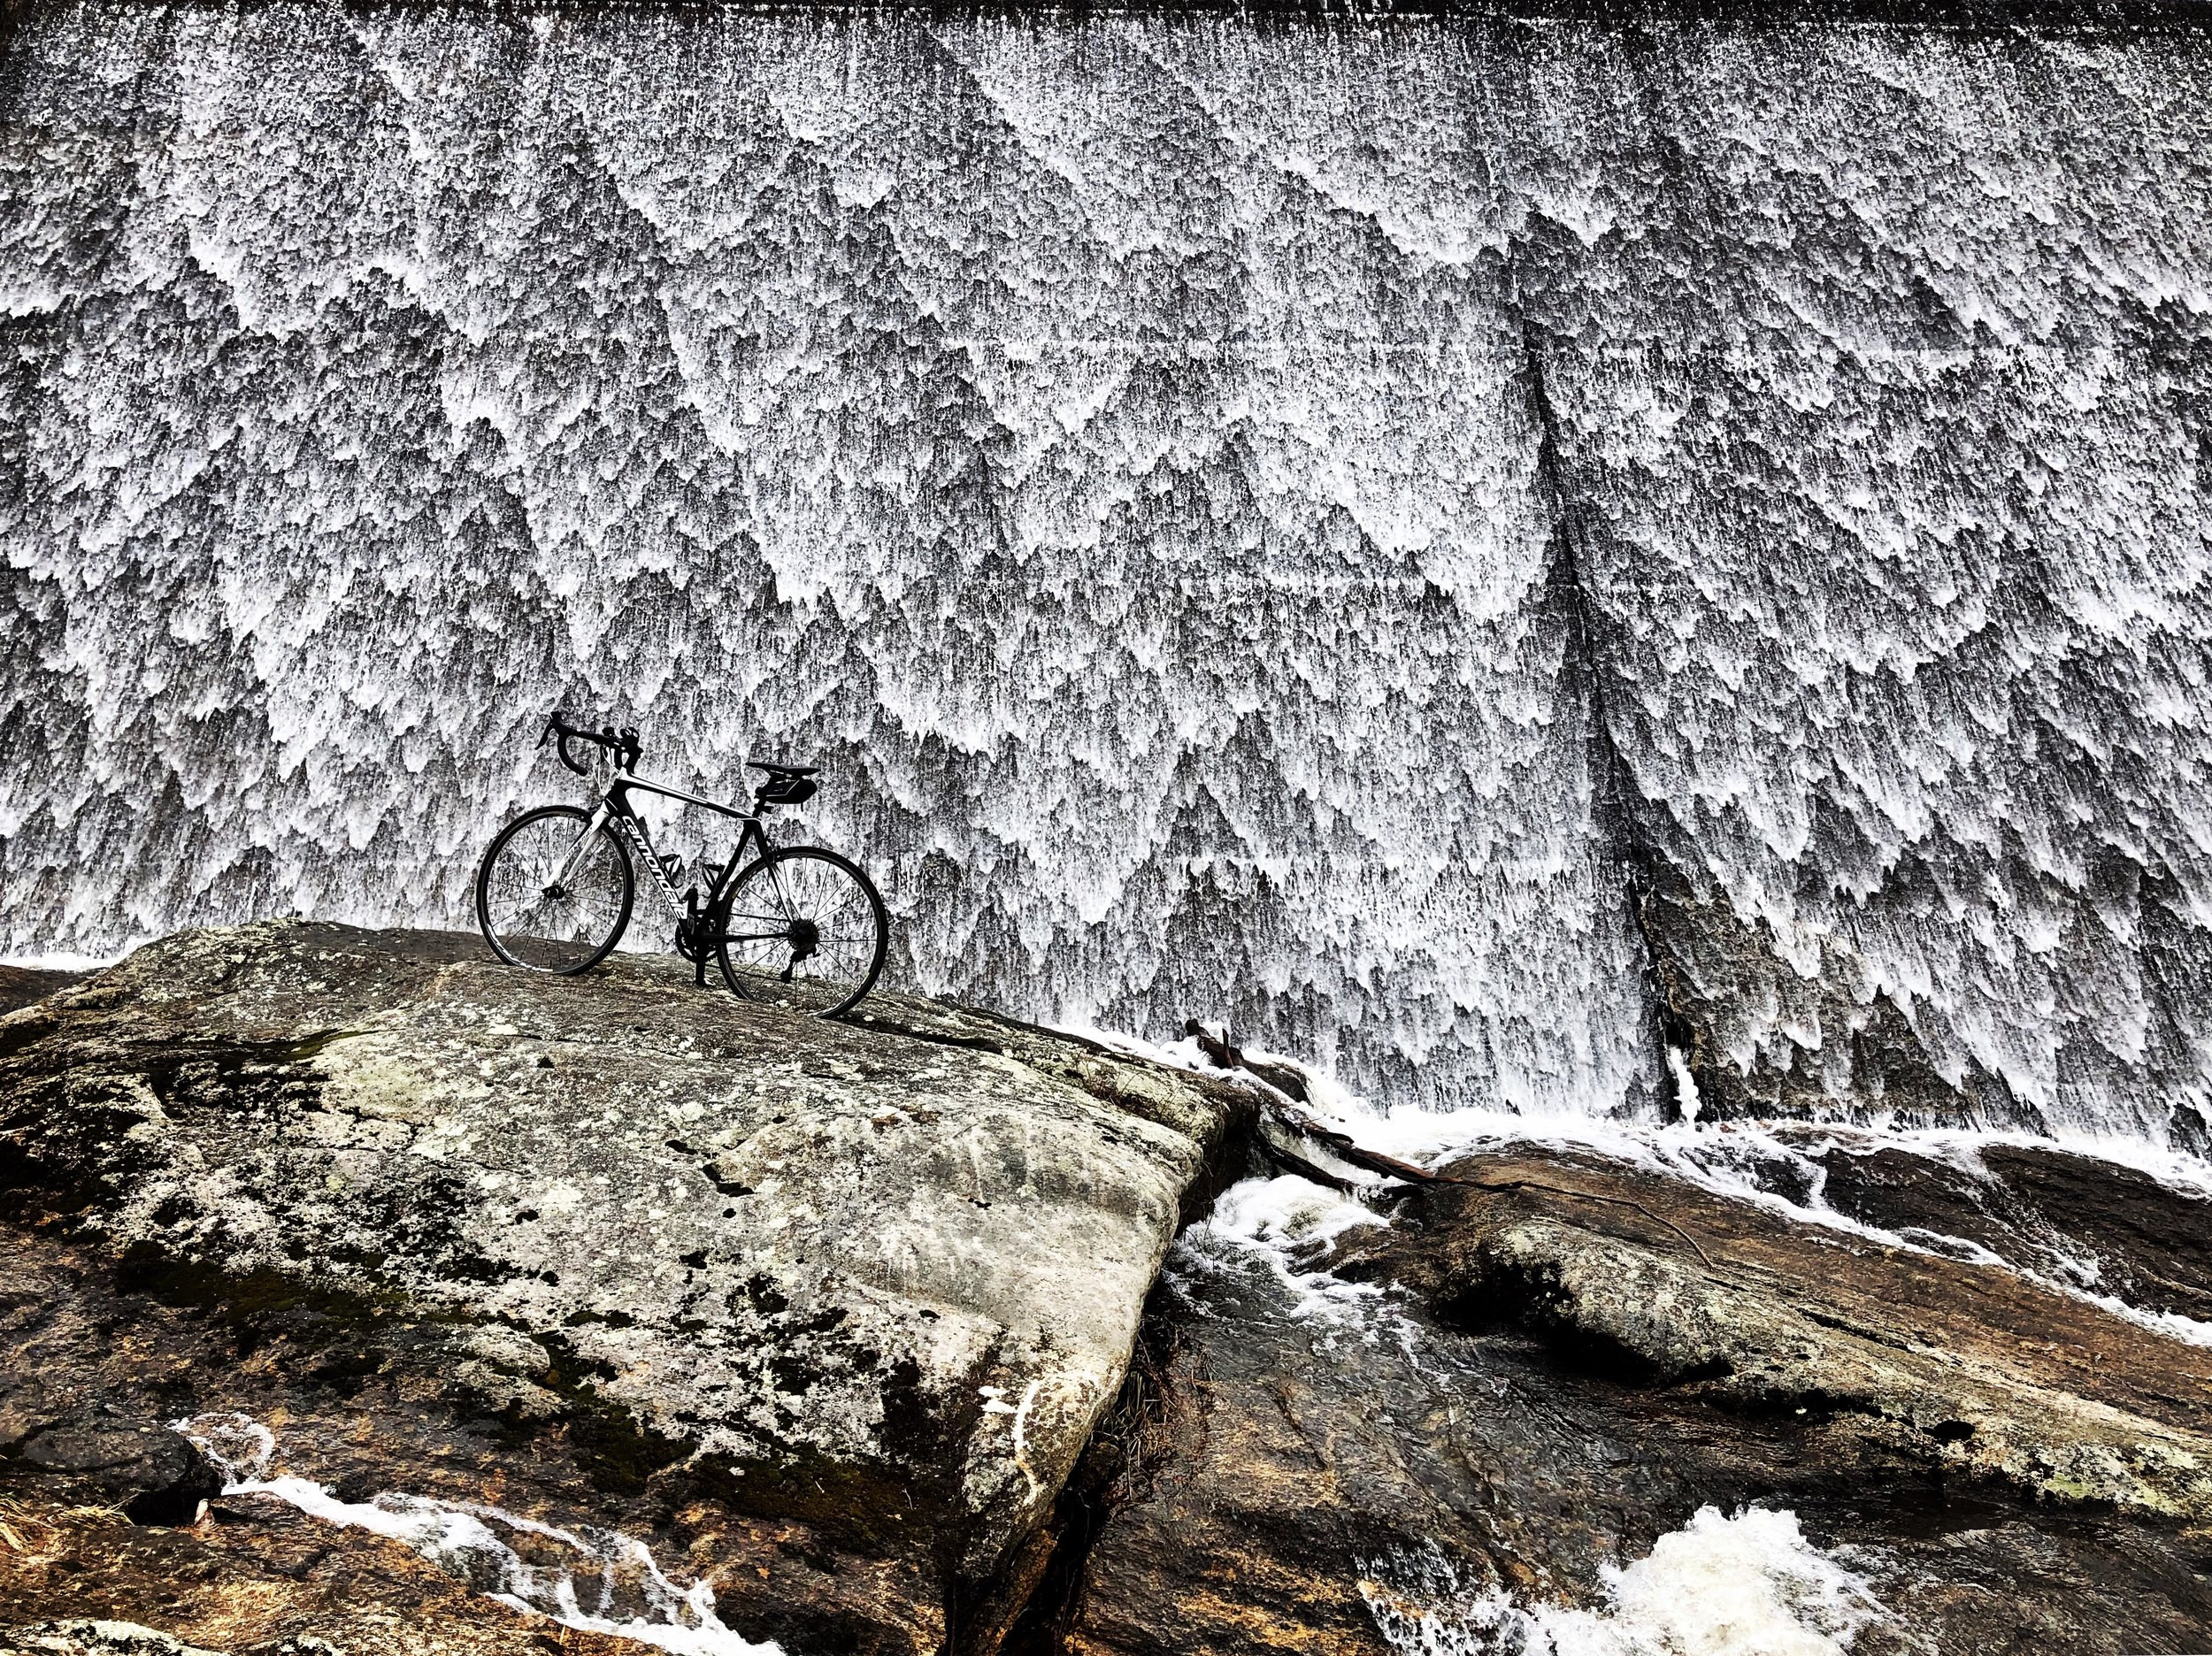 Martin J. Gallagher, Lake Welch Dam, Harriman State Park